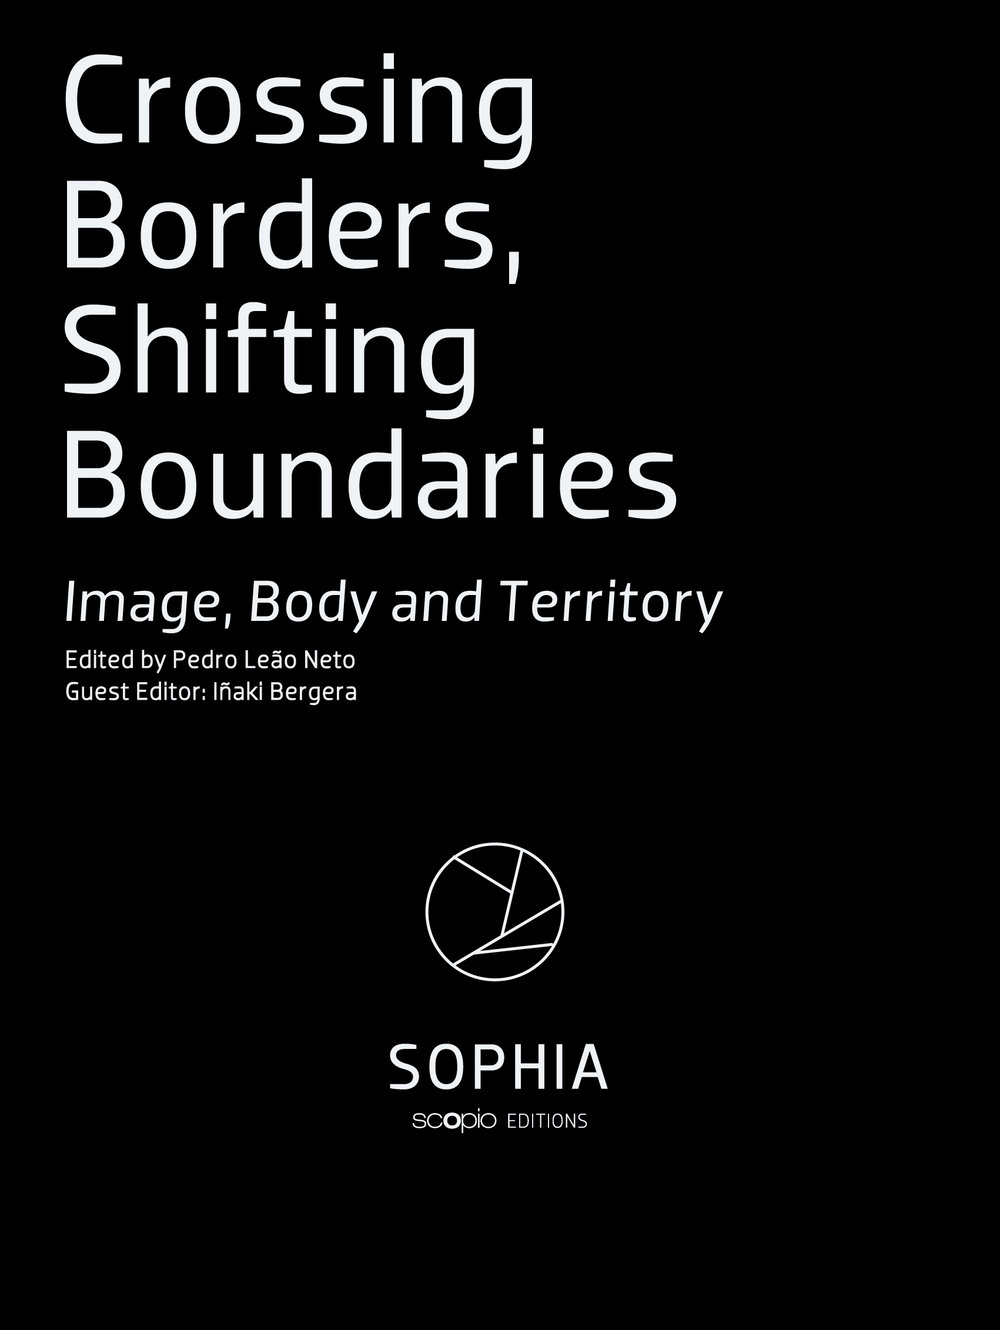 SOPHIA JOURNAL  CROSSING BORDERS, SHIFTING BOUNDARIES   IMAGE, BODY AND TERRITORY